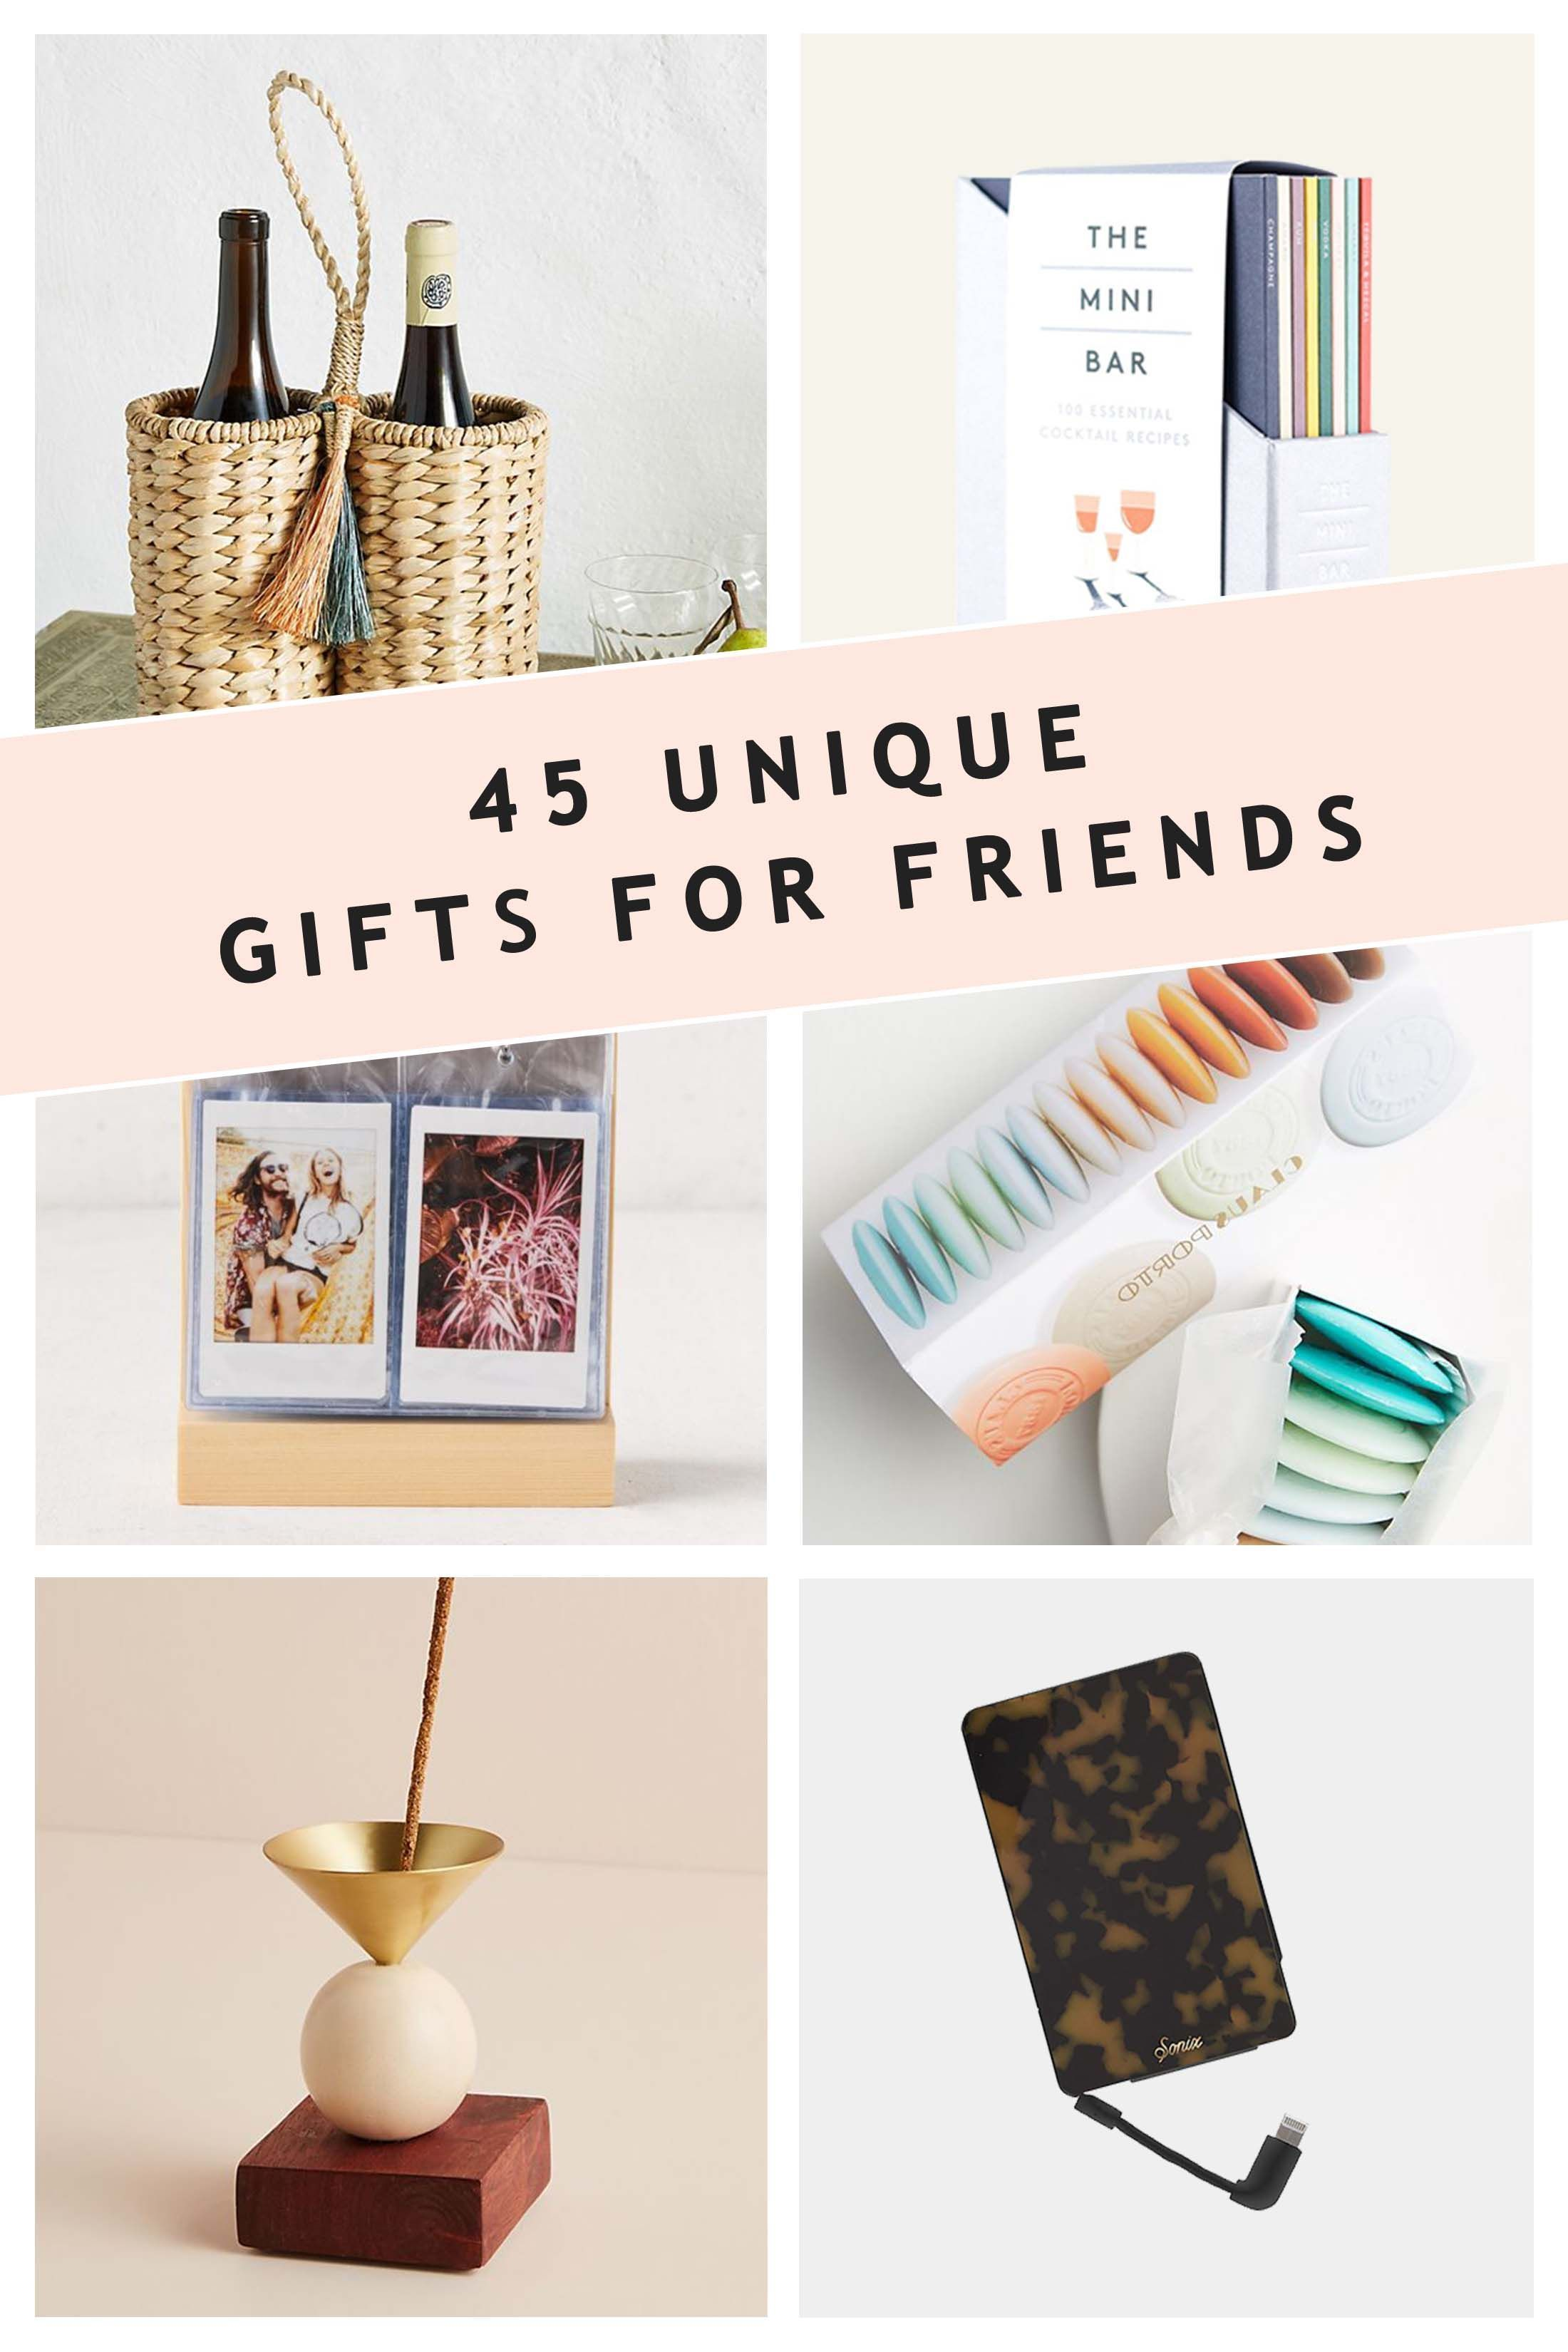 Finding the perfect gifts for friends can be hard, so we're making it easy with these 45 unique gift ideas! This gift guide features a variety of gift ideas that are sure to fit those on your shopping list this holiday season. We know you want to pick out thoughtful gifts, and we've got you covered so you have the perfect presents for the friends in your life. #giftideas #giftguide #Christmas #holidays #presents #friends #giftsforhim #giftsforher